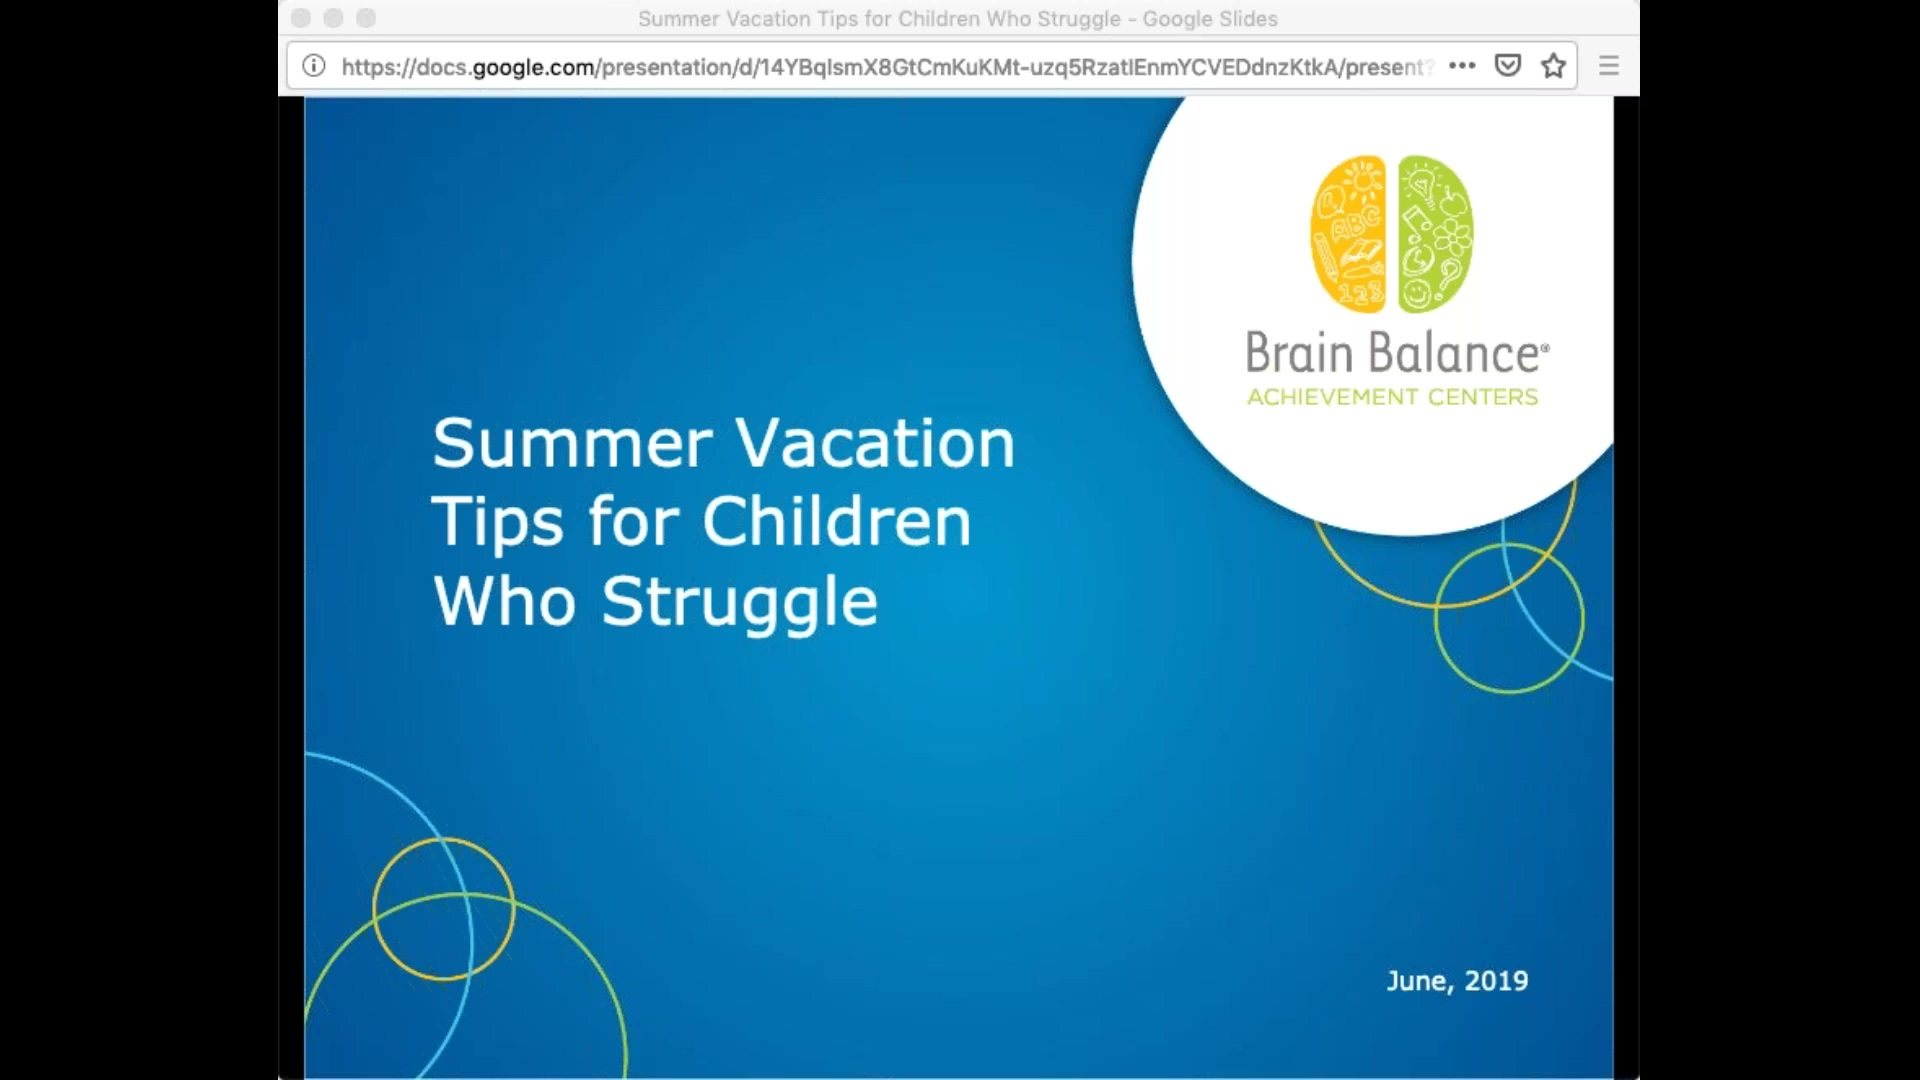 Summer Vacation Tips for Kids who Struggle